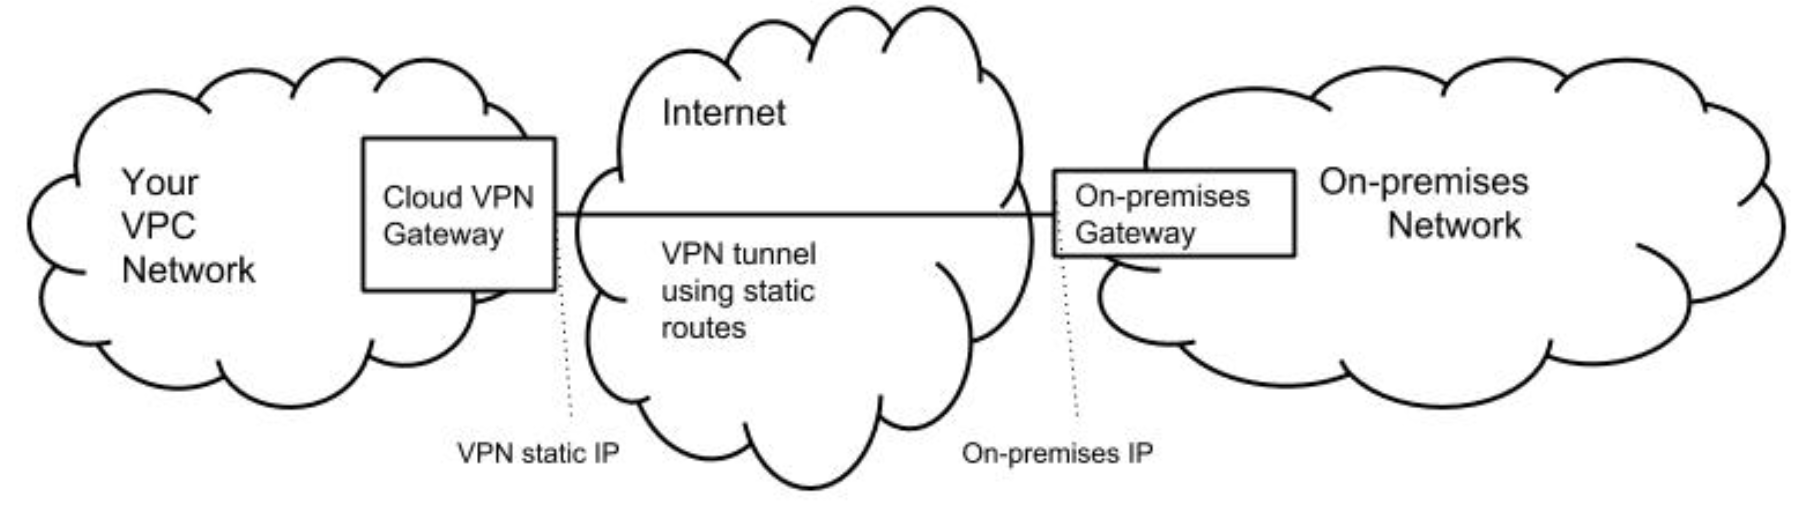 site-to-site IPsec VPN tunnel config with static routing